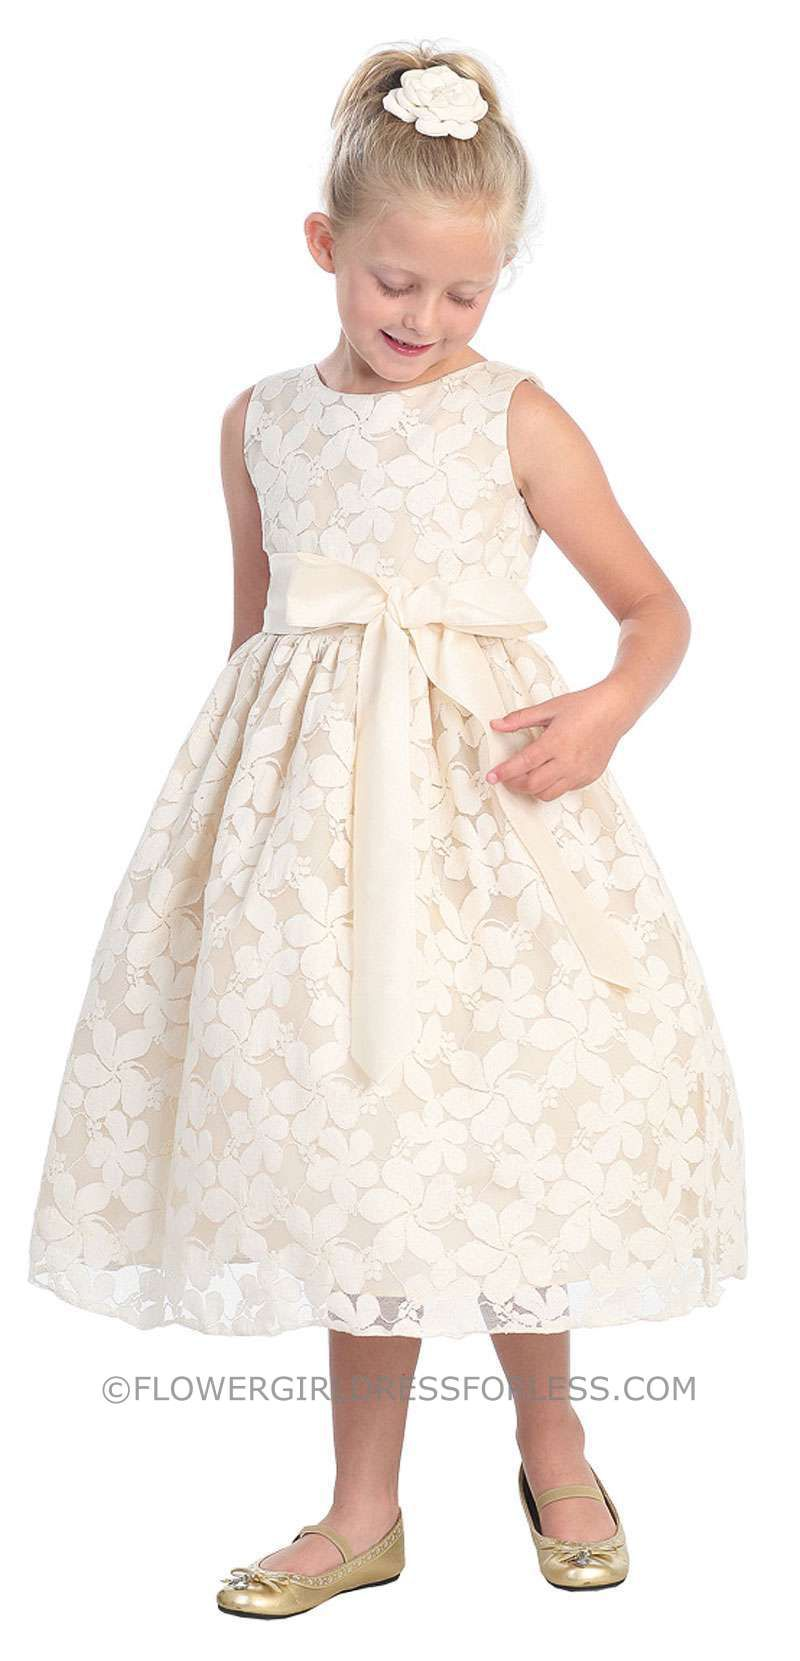 Sk282 flower girl dress style 282 gorgeous spring jasmine lace sk282 flower girl dress style 282 gorgeous spring jasmine lace dress size 7 izmirmasajfo